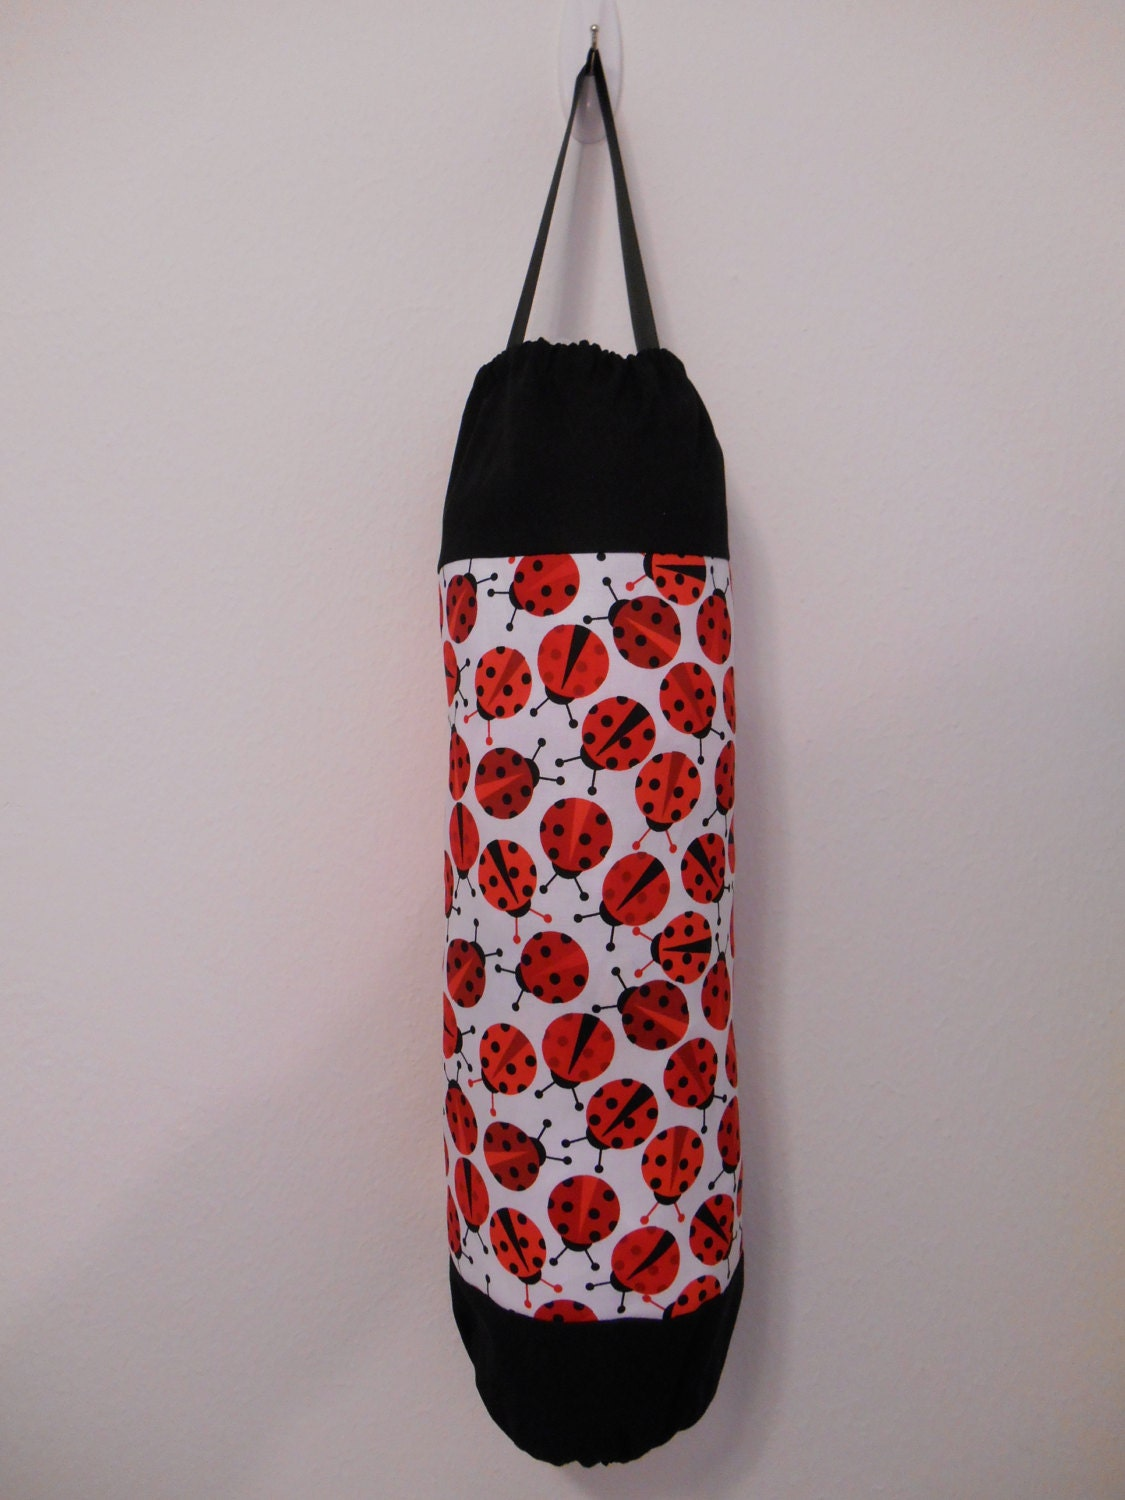 plastic bag holder grocery bag dispenser red and black. Black Bedroom Furniture Sets. Home Design Ideas